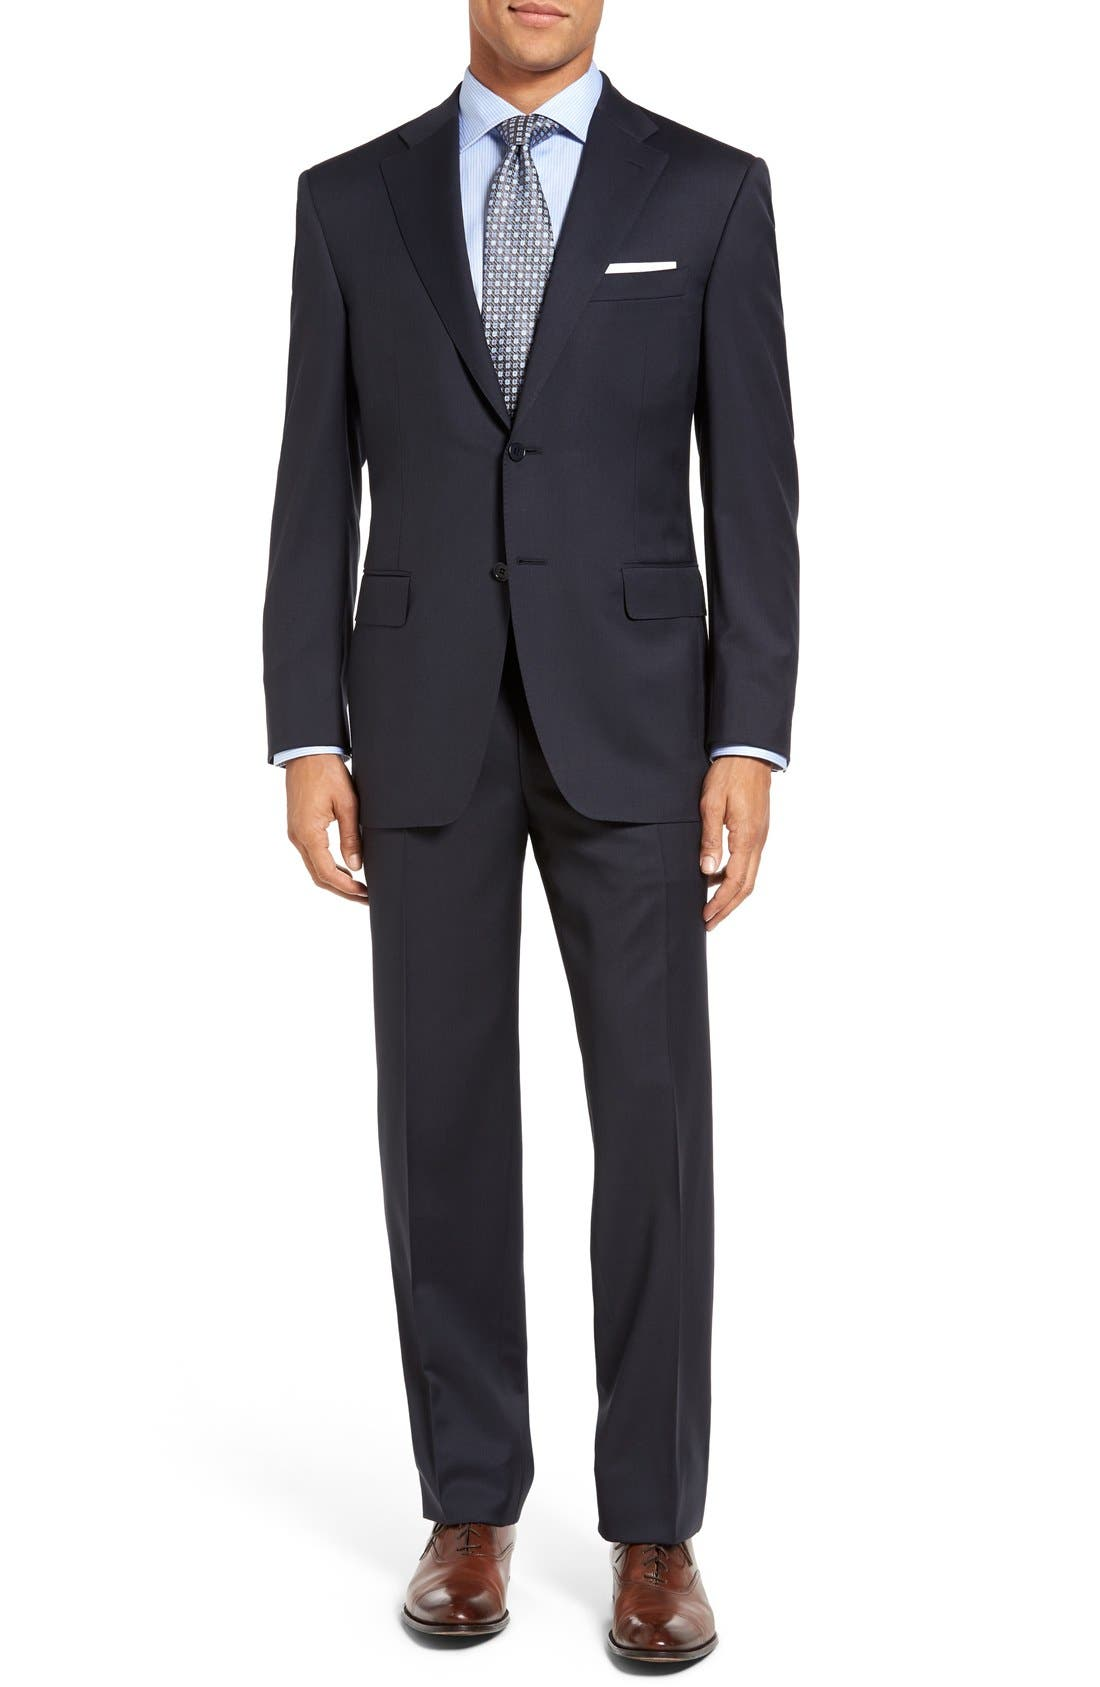 CANALI, Classic Fit Solid Wool Suit, Main thumbnail 1, color, NAVY